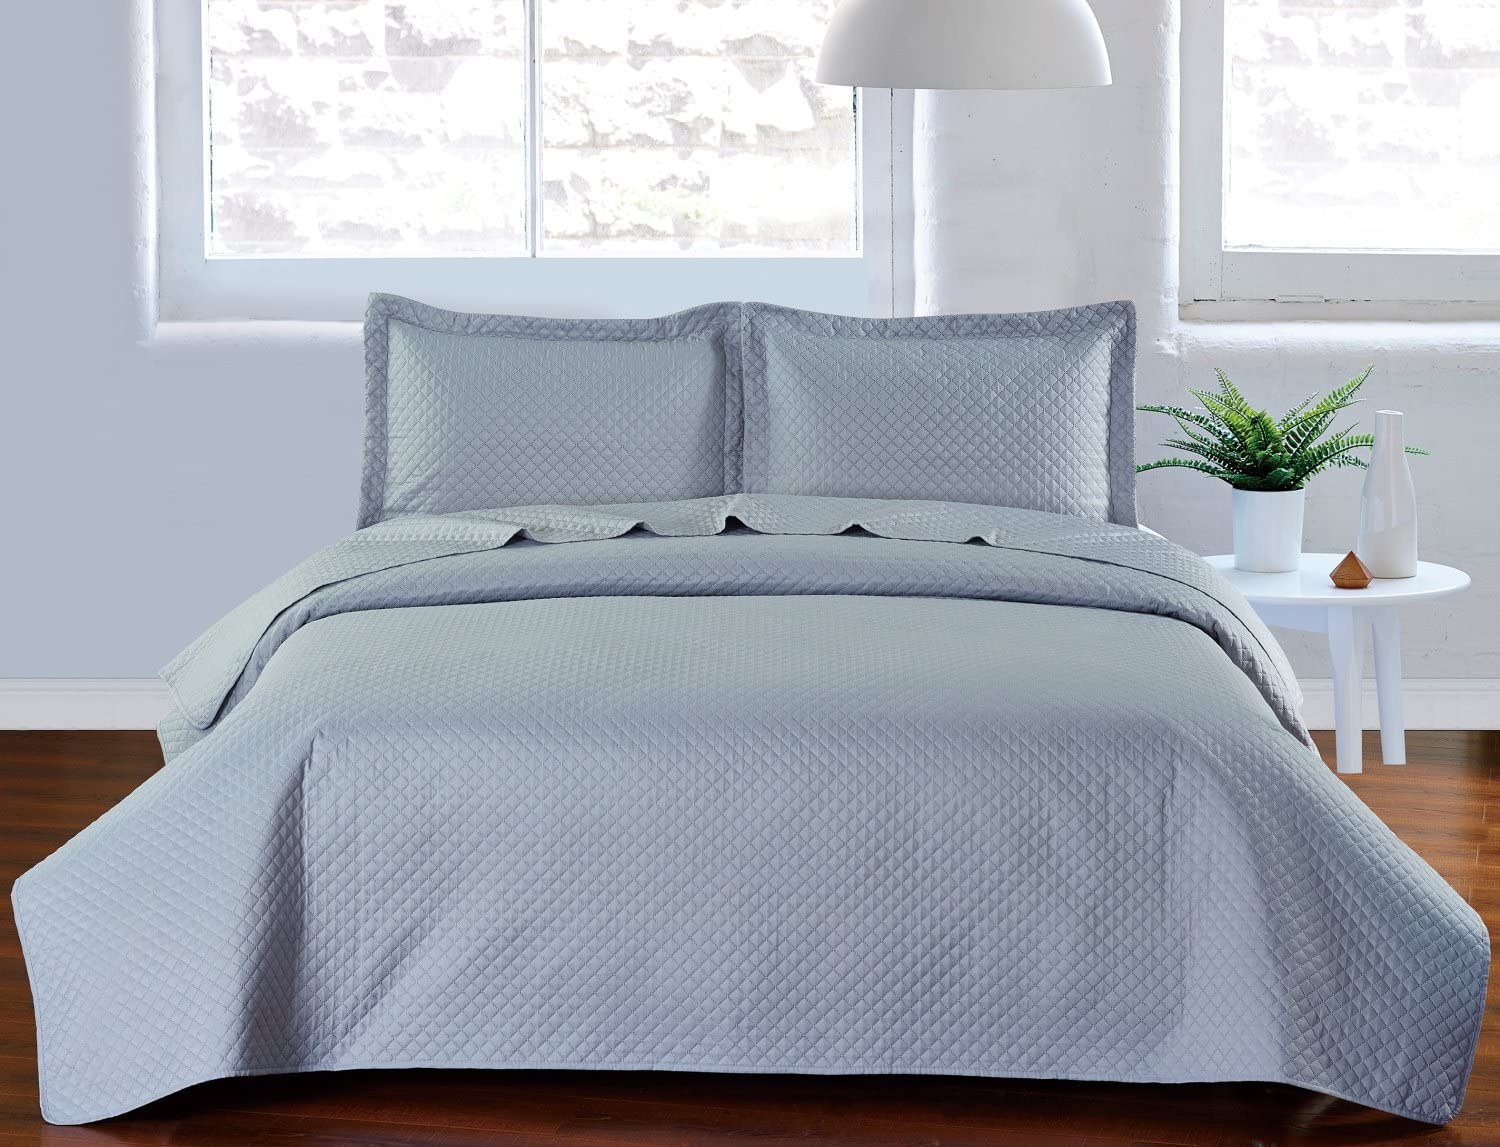 Livingston Home Plaid Ultrasonic New mail order Ranking TOP16 Coverlet Ligh Twin Bed Spread